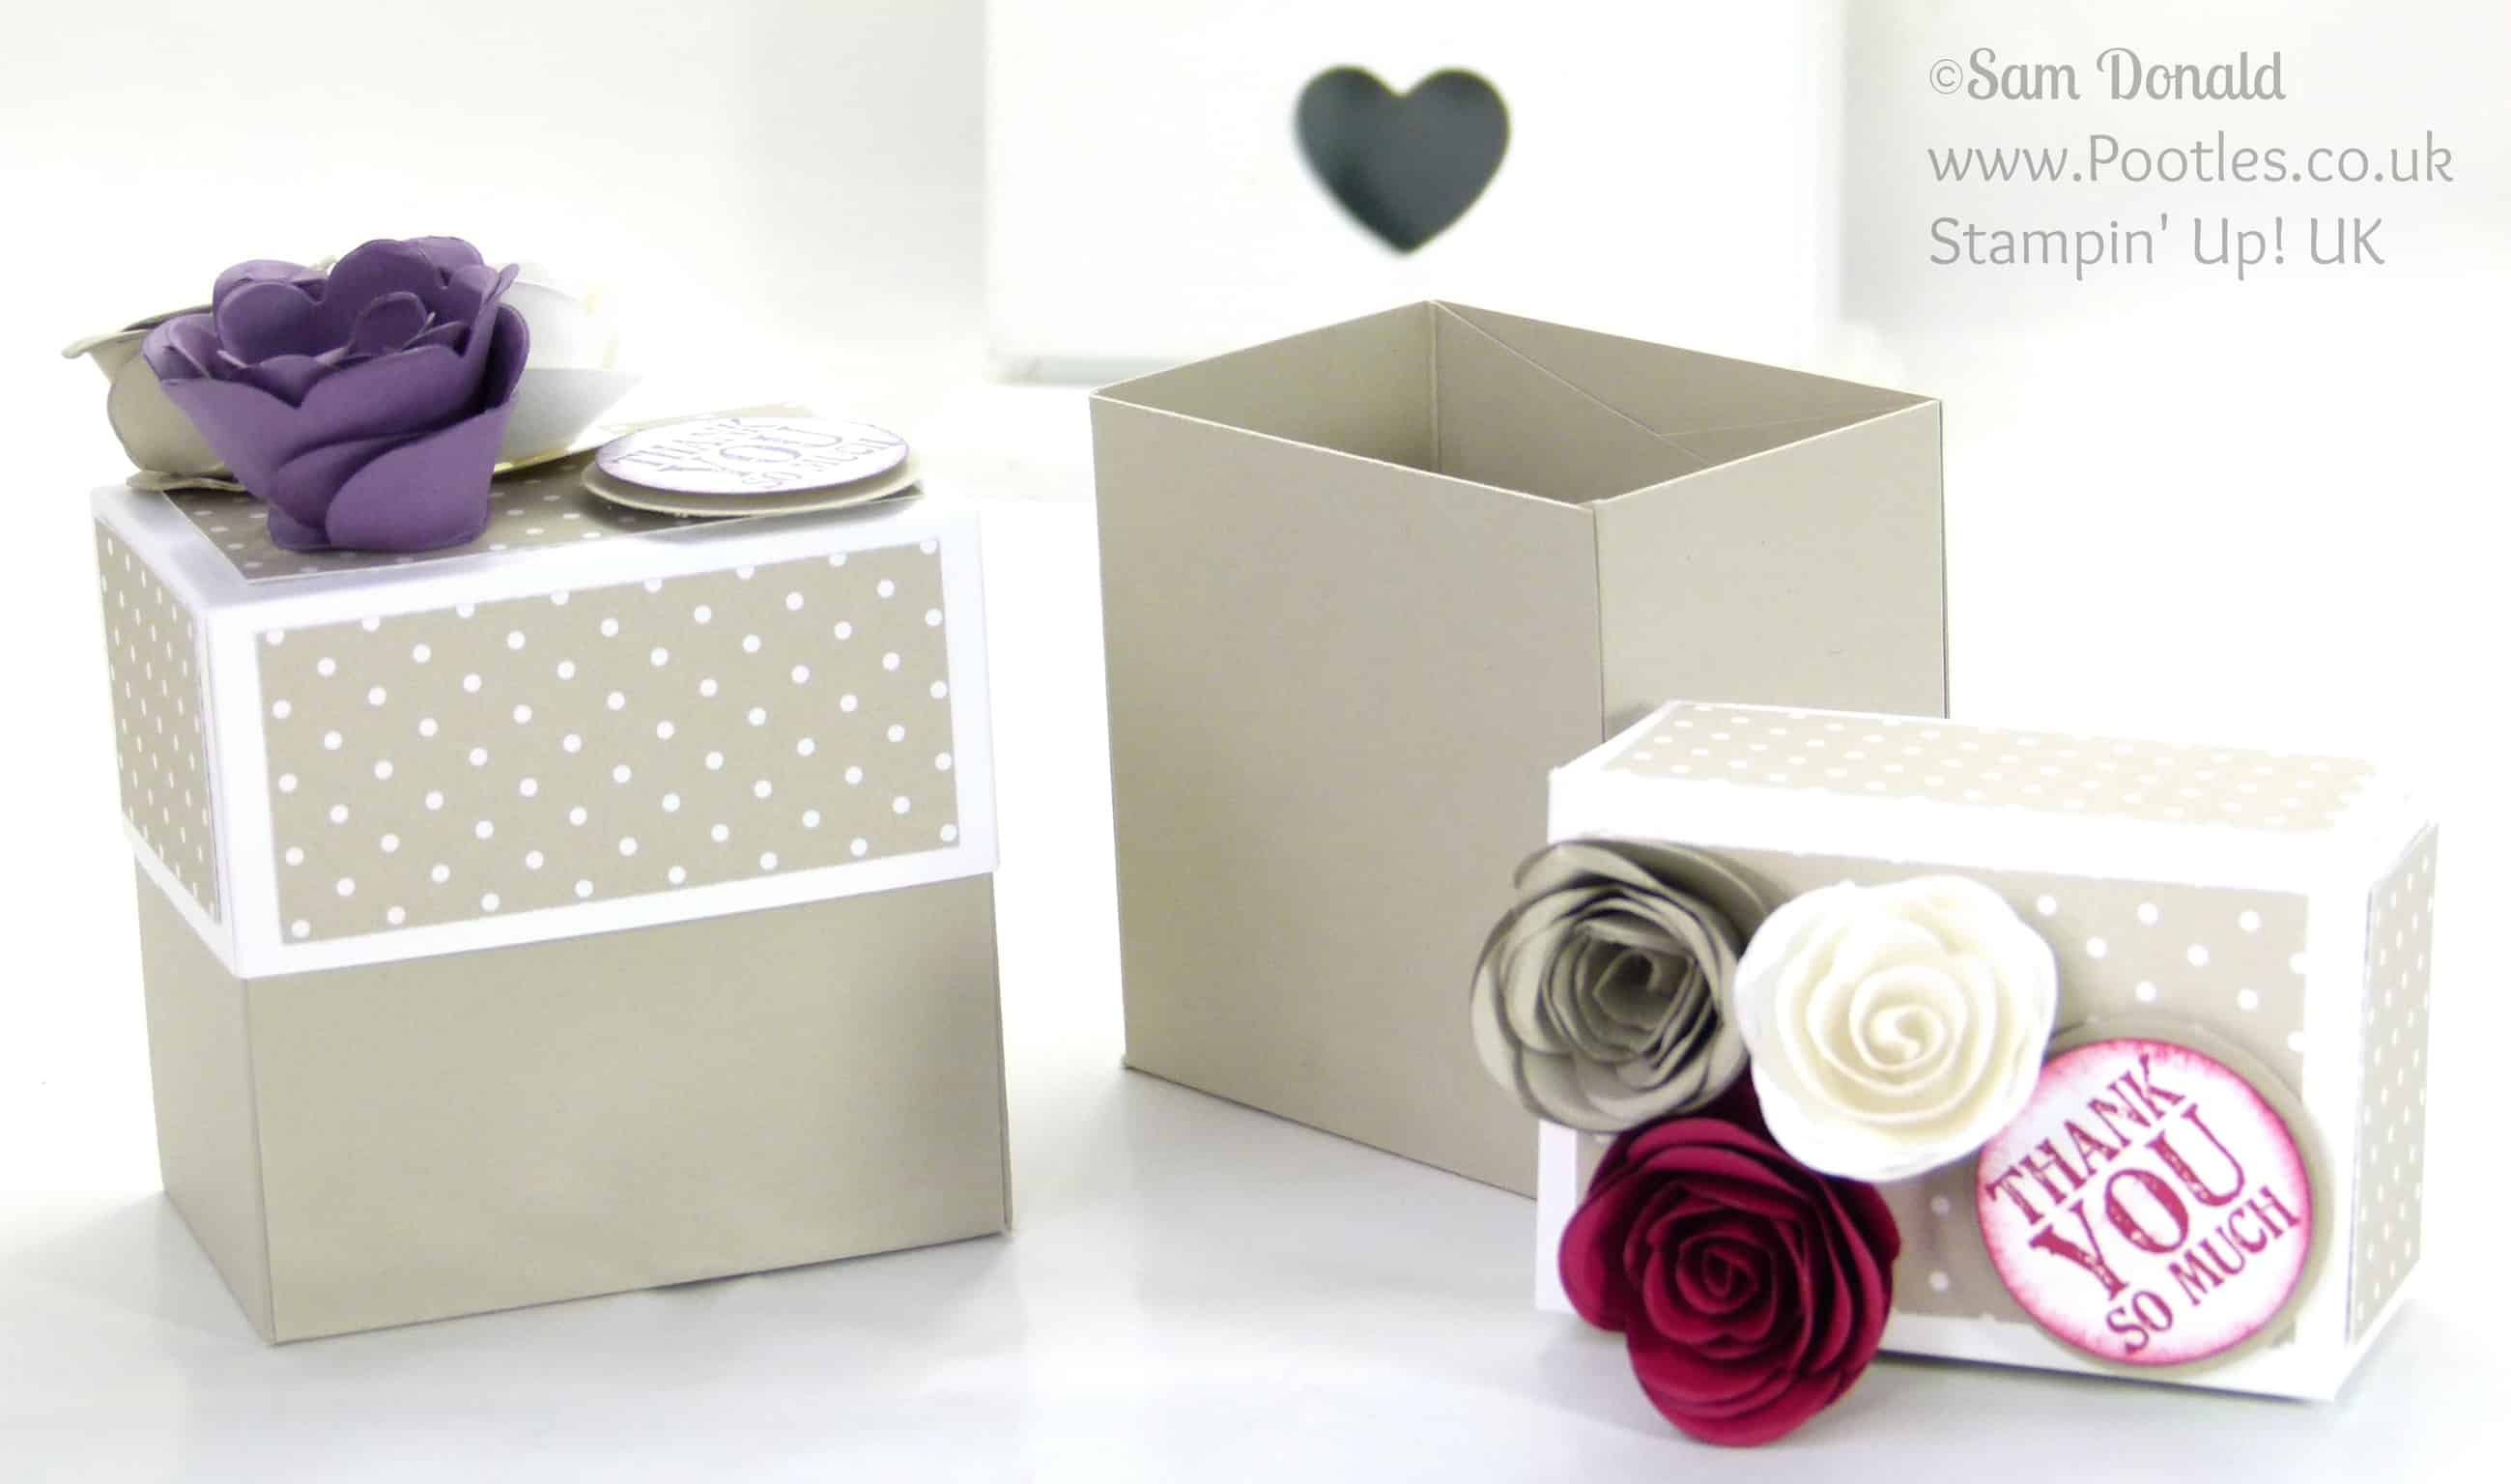 Stampin' Up! UK Demonstrator - Pootles. Rectangular Lidded Box Tutorial with Roses using Stampin' Up! Spiral Flower Die